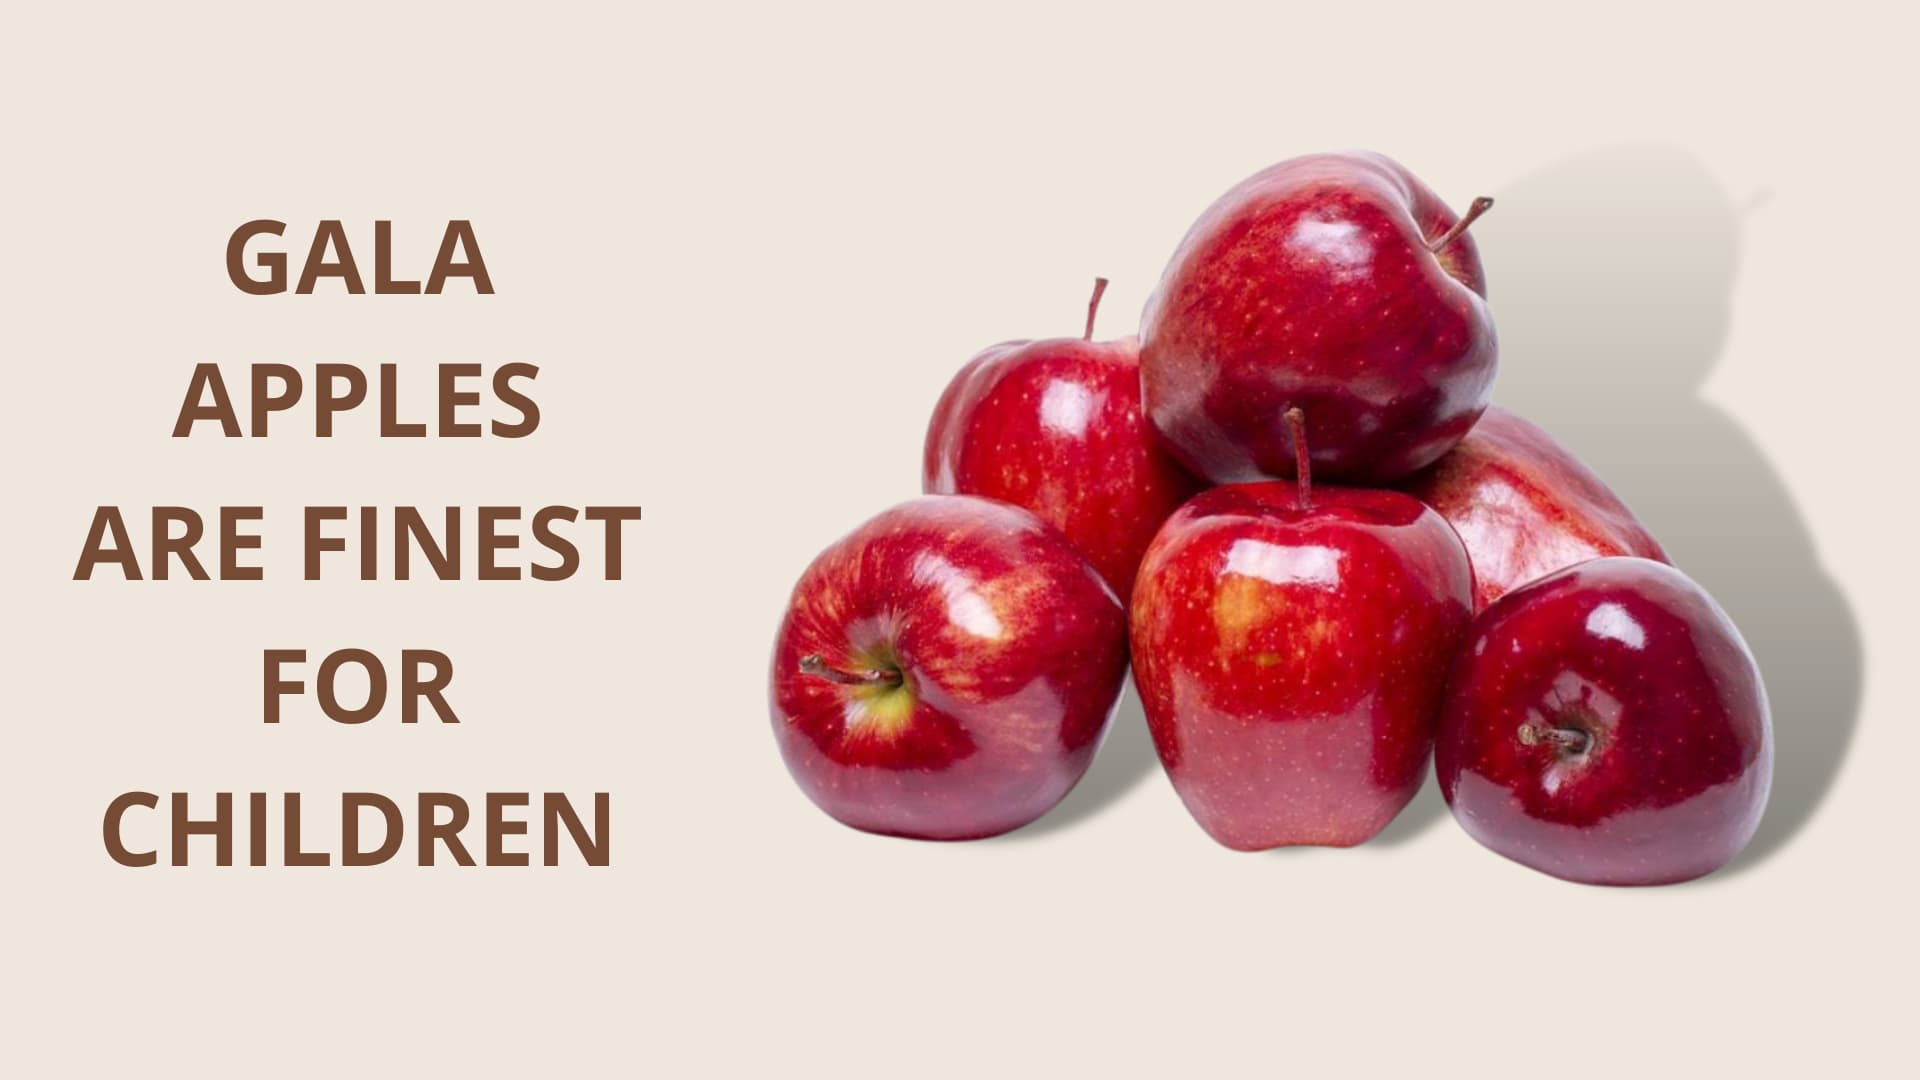 Gala Apples are Finest for Children